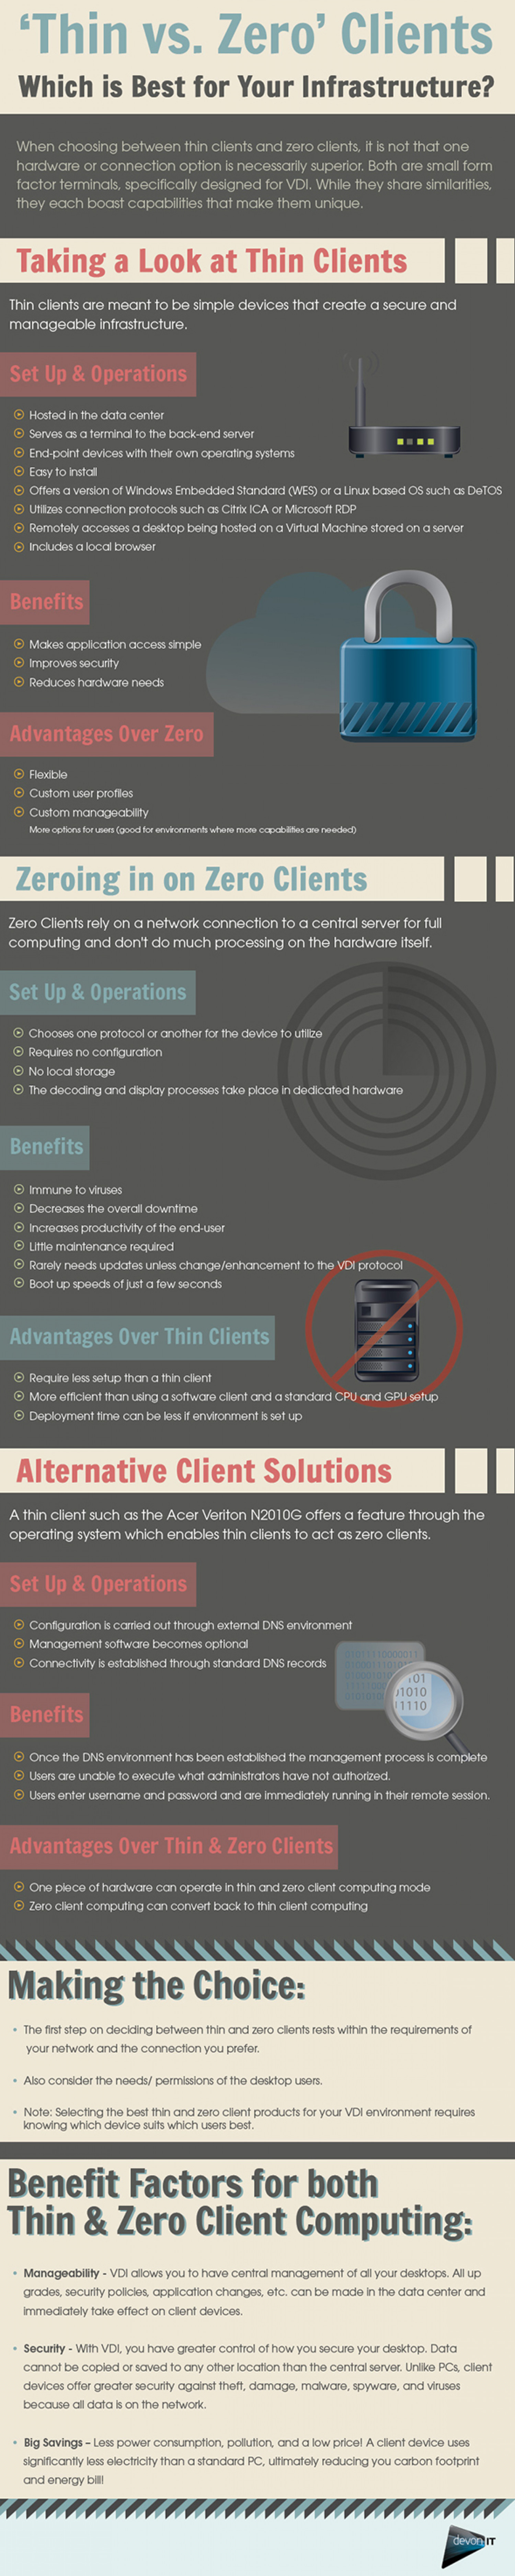 Thin Clients vs. Zero Clients Infographic